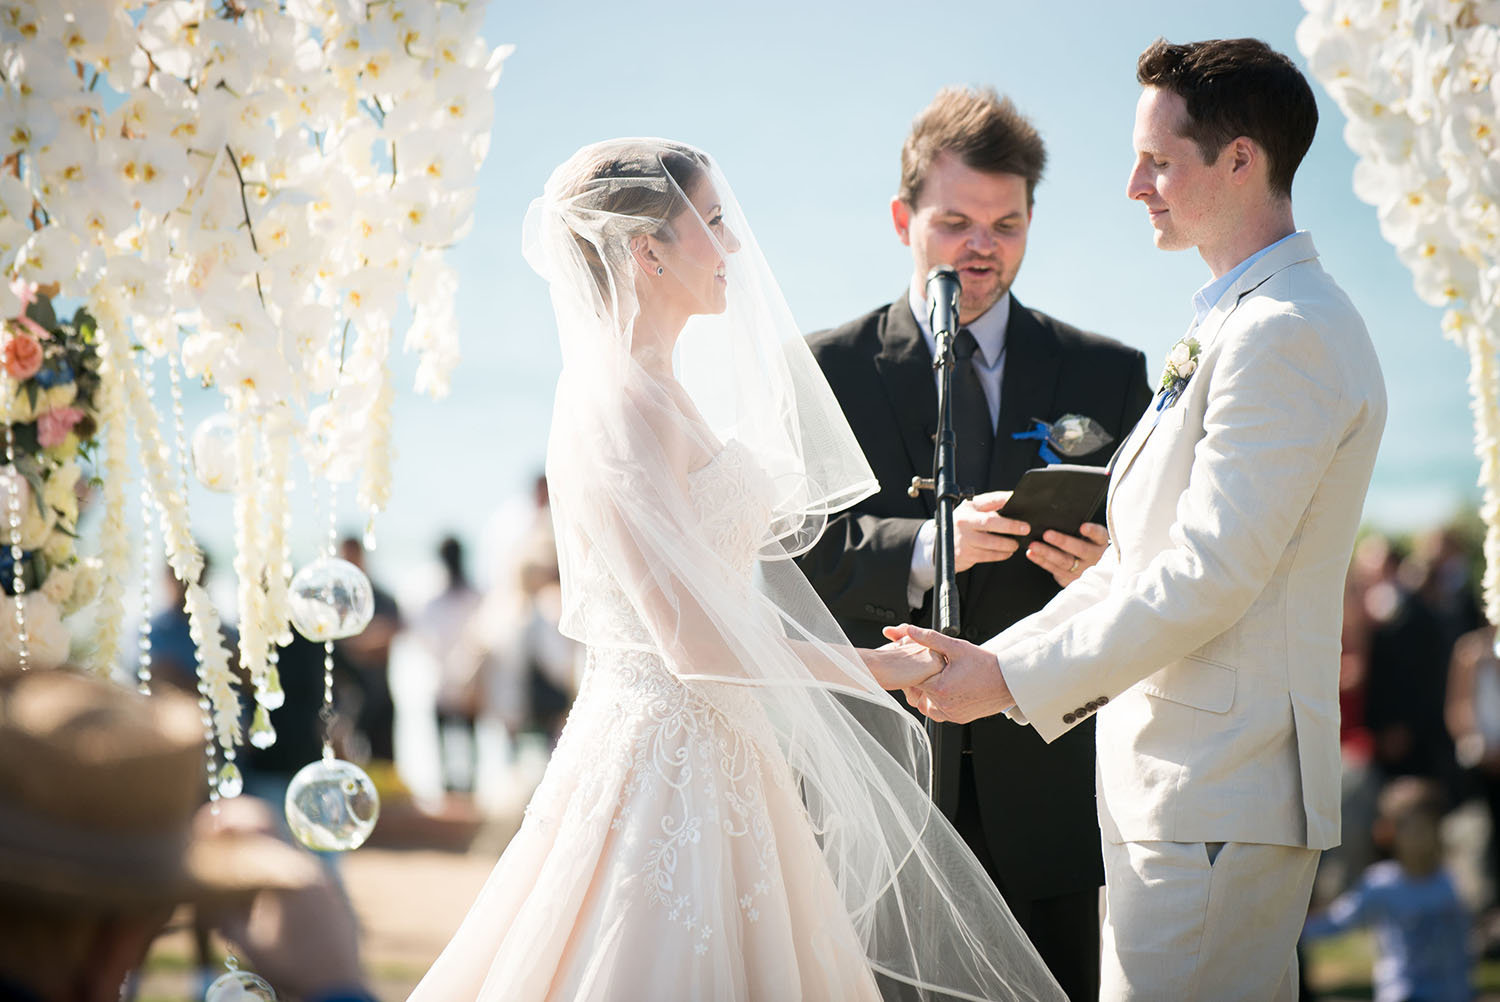 Wedding ceremony with blue skies at Seagrove Park